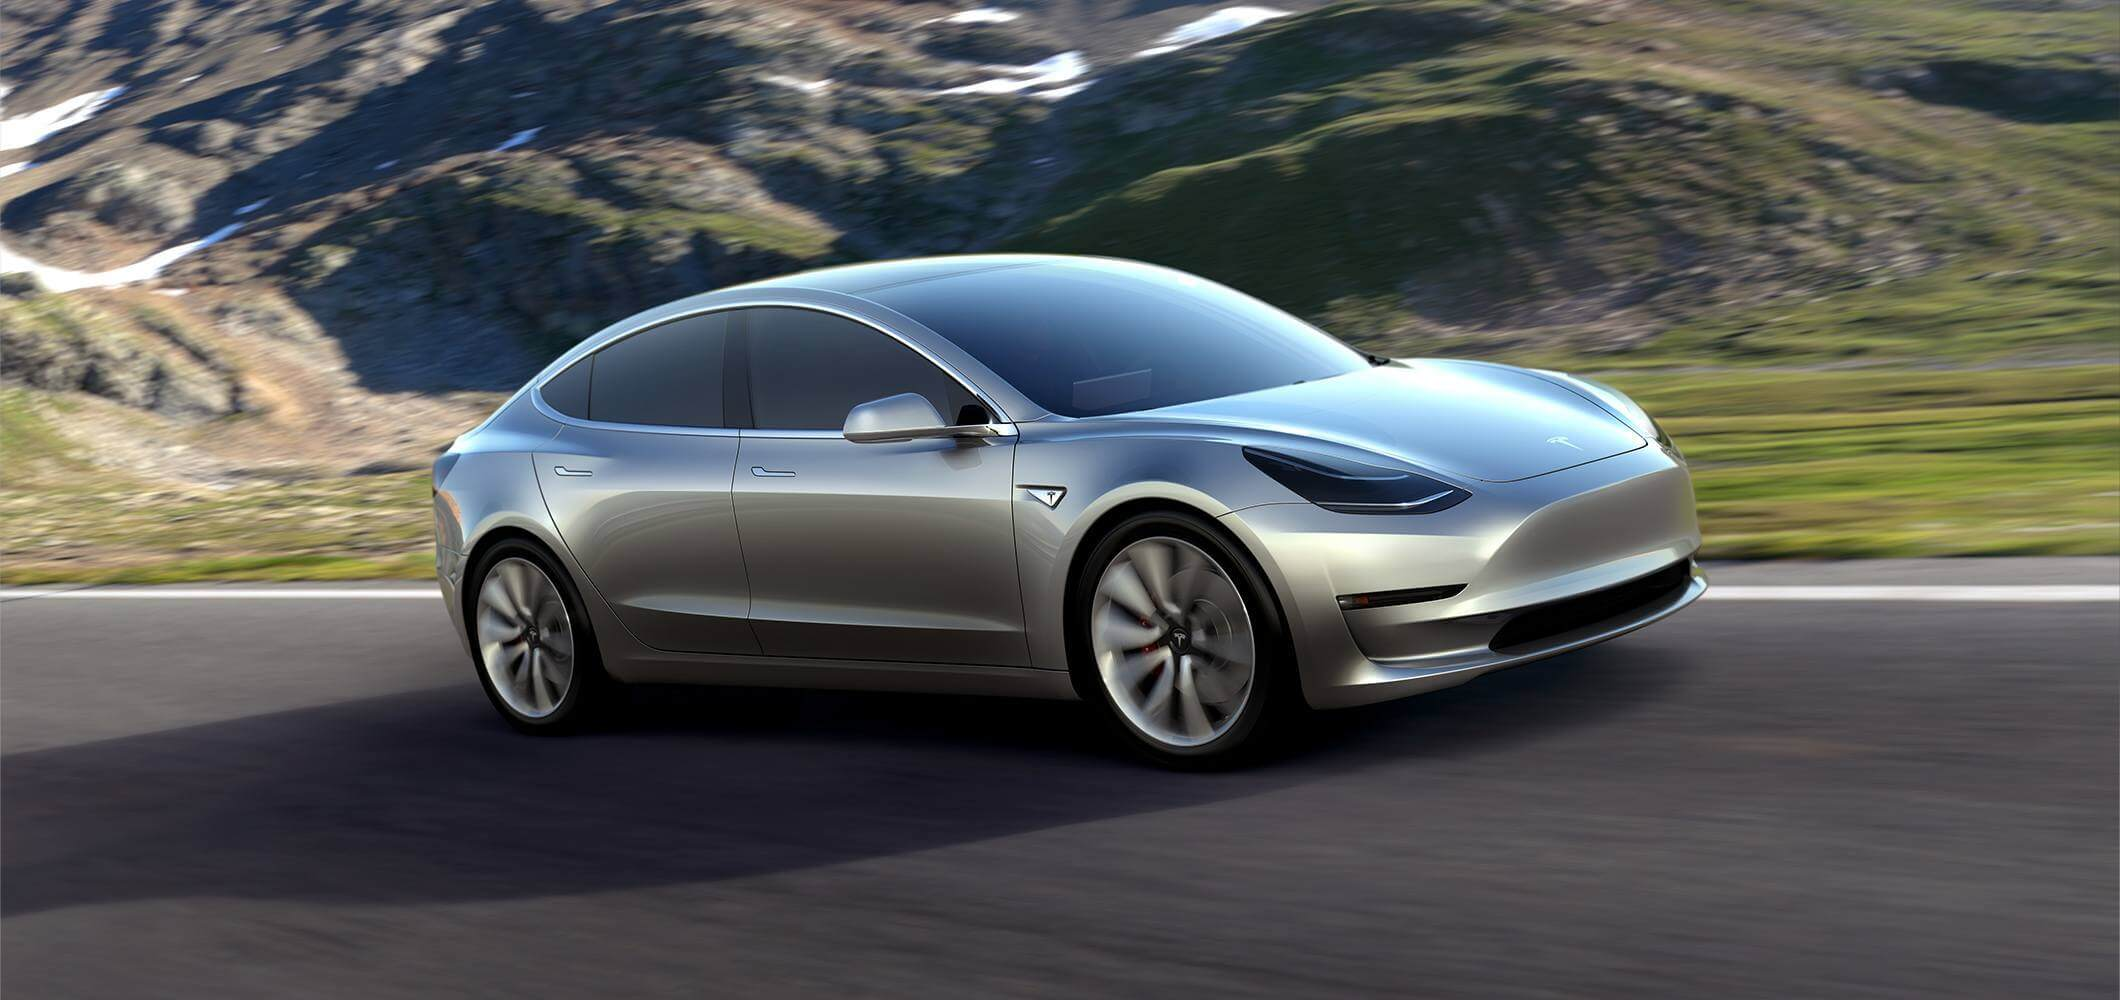 Can You Use Your Tesla as a WiFi Hotspot?